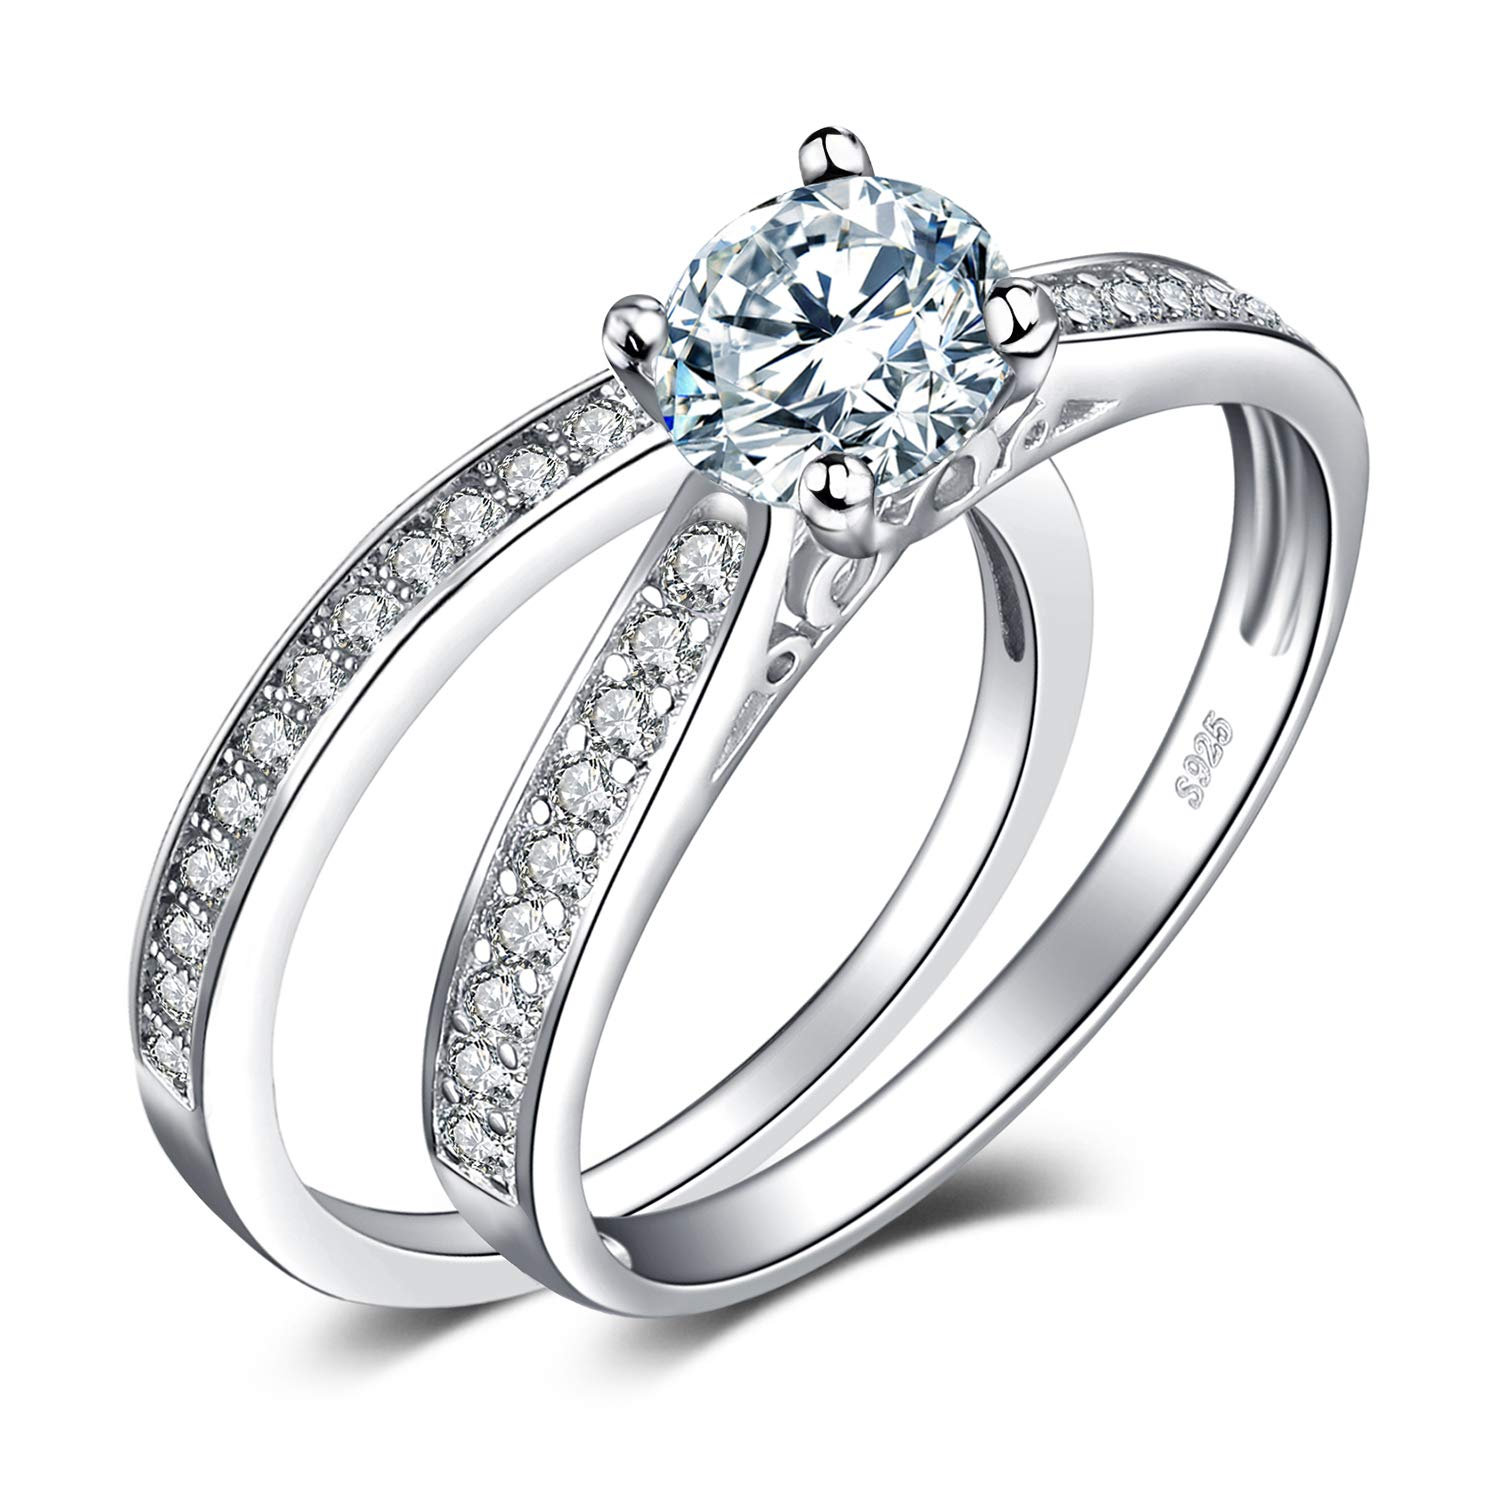 Engagement Ring And Wedding Band.Jewelrypalace 1 3ct Cubic Zirconia Anniversary Wedding Band Solitaire Engagement Ring Bridal Sets 925 Sterling Silver